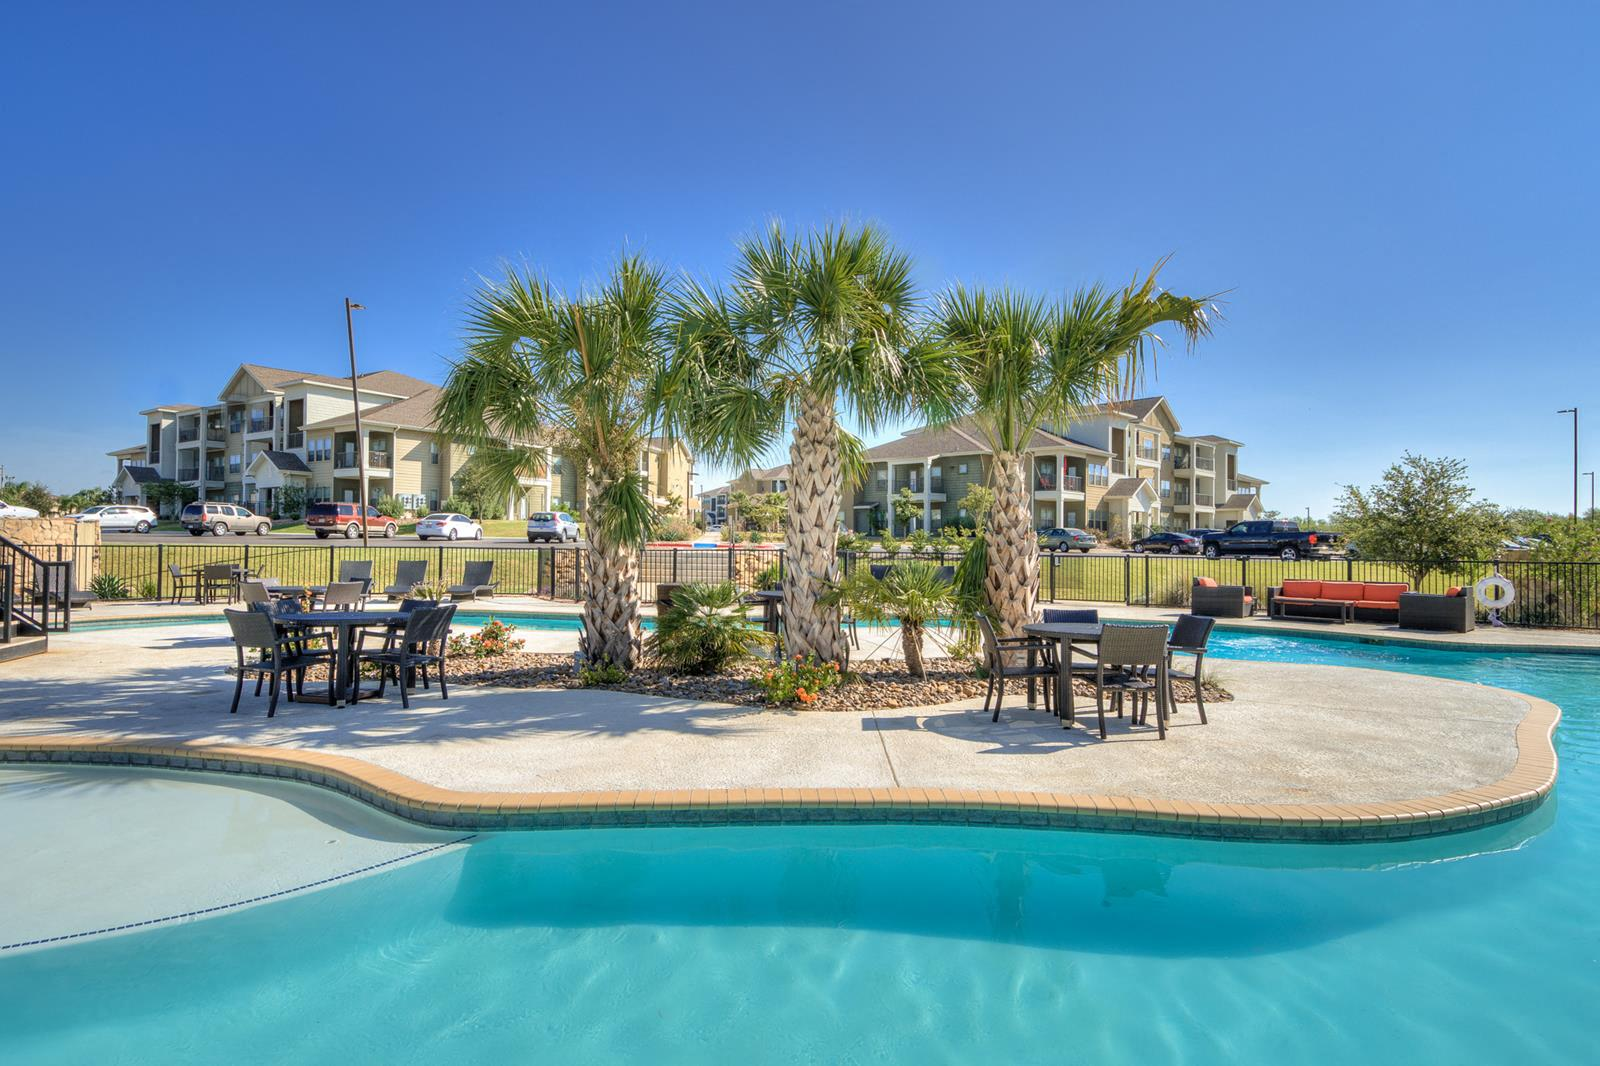 Superior Relaxing Lazy River Style Pool At La Contessa Luxury Apartments,  Laredo,Texas